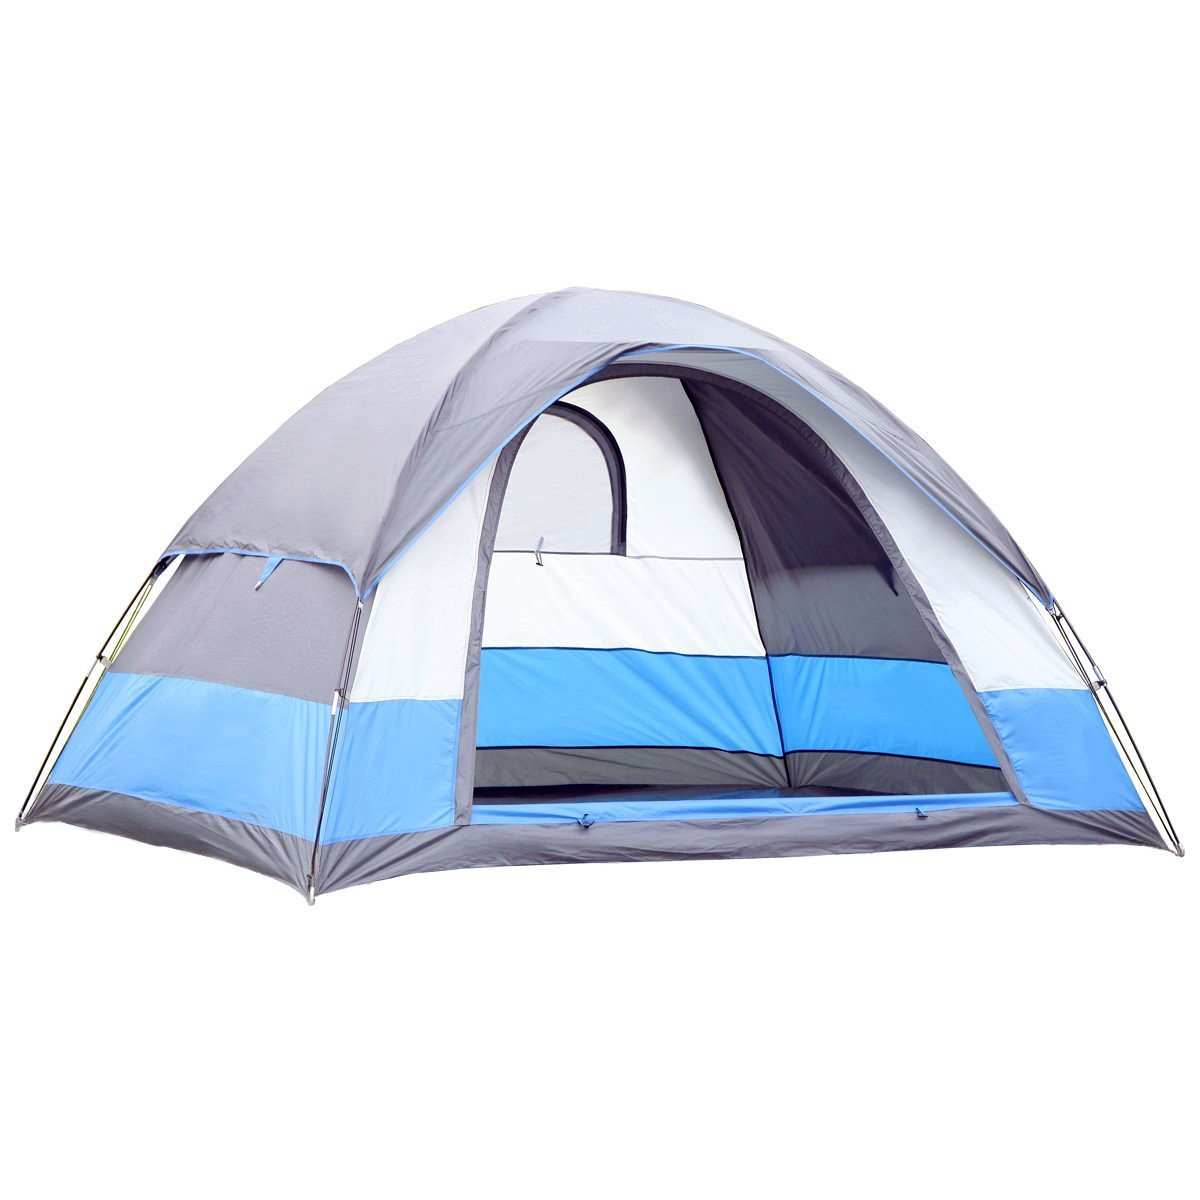 Water Resistant 5 Person 3-Season Lightweight Family Dome Tent for Camping 6923669704383   eBay